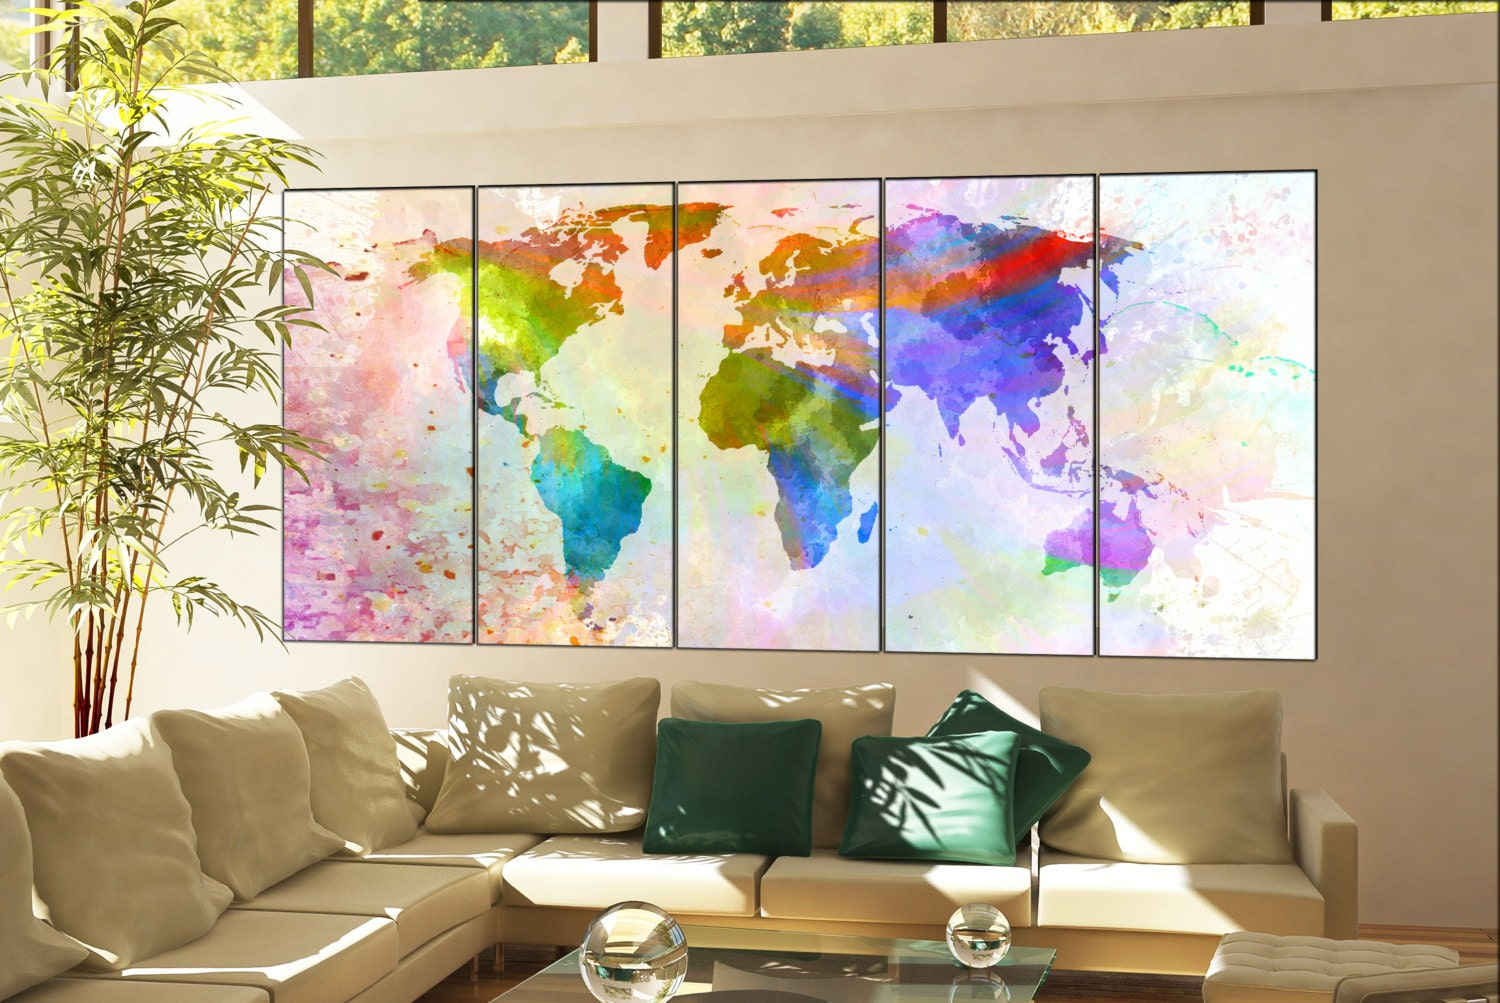 Office decor world map print on canvas wall art office decor world office decor world map print on canvas wall art office decor world map print artwork large office decor world map home decoration 5 panel gumiabroncs Gallery